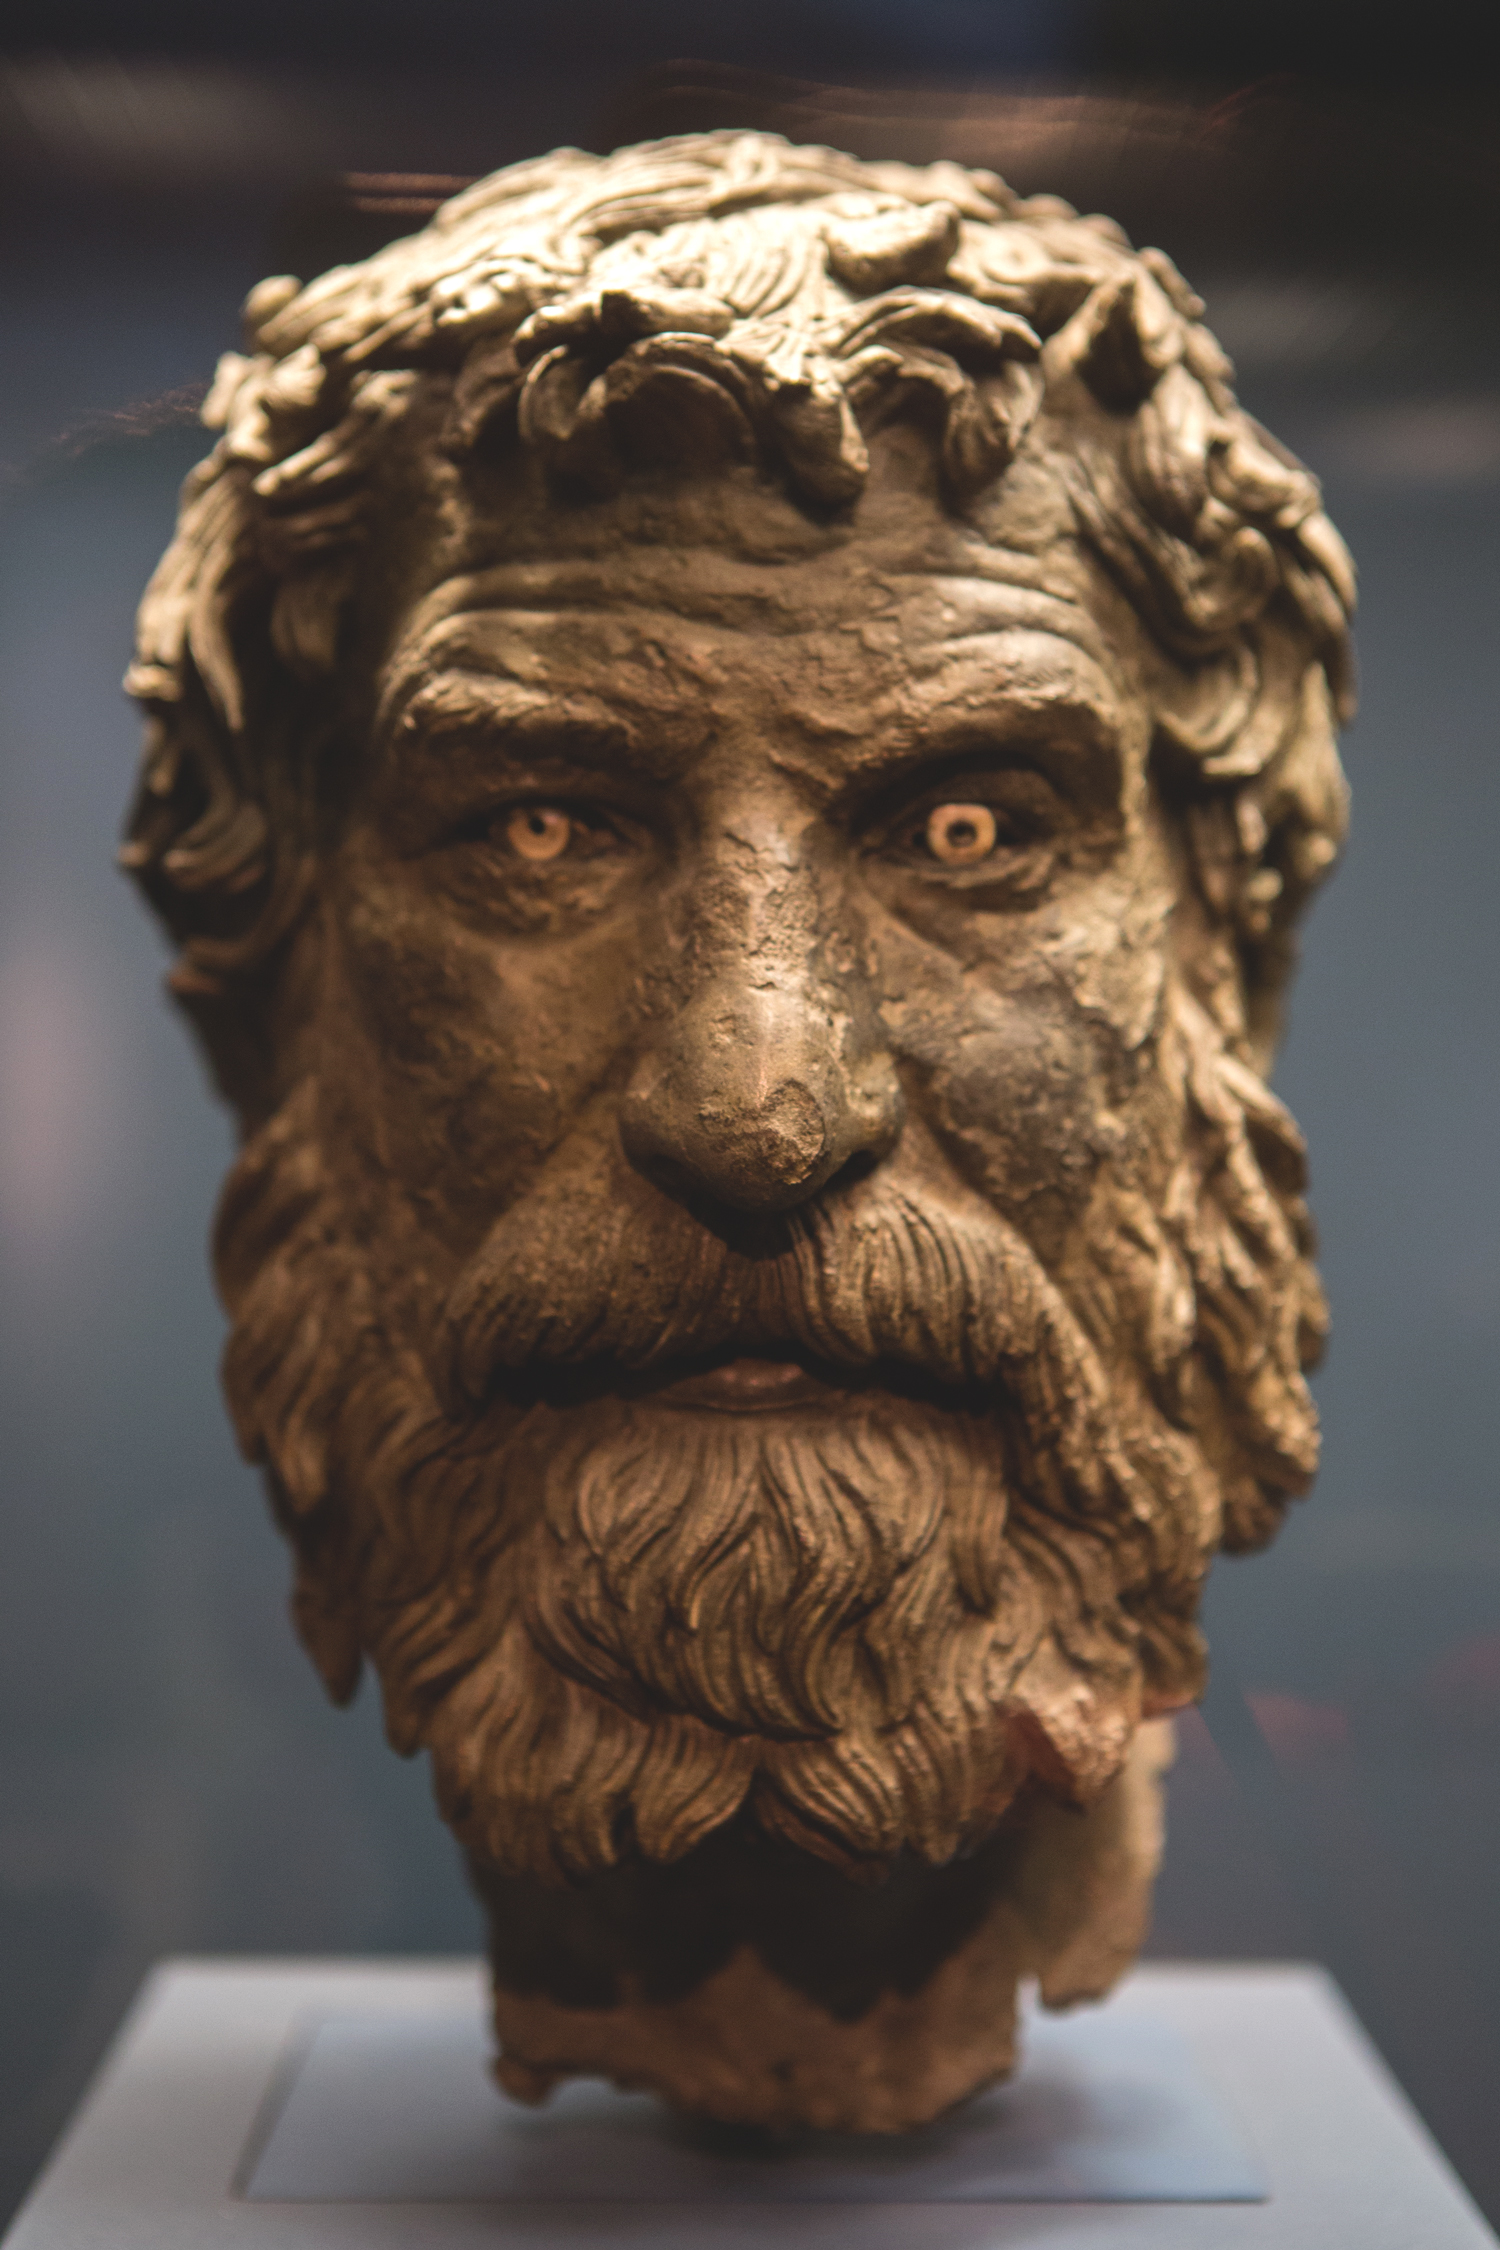 Sculpture from the national archaeology museum in Athens